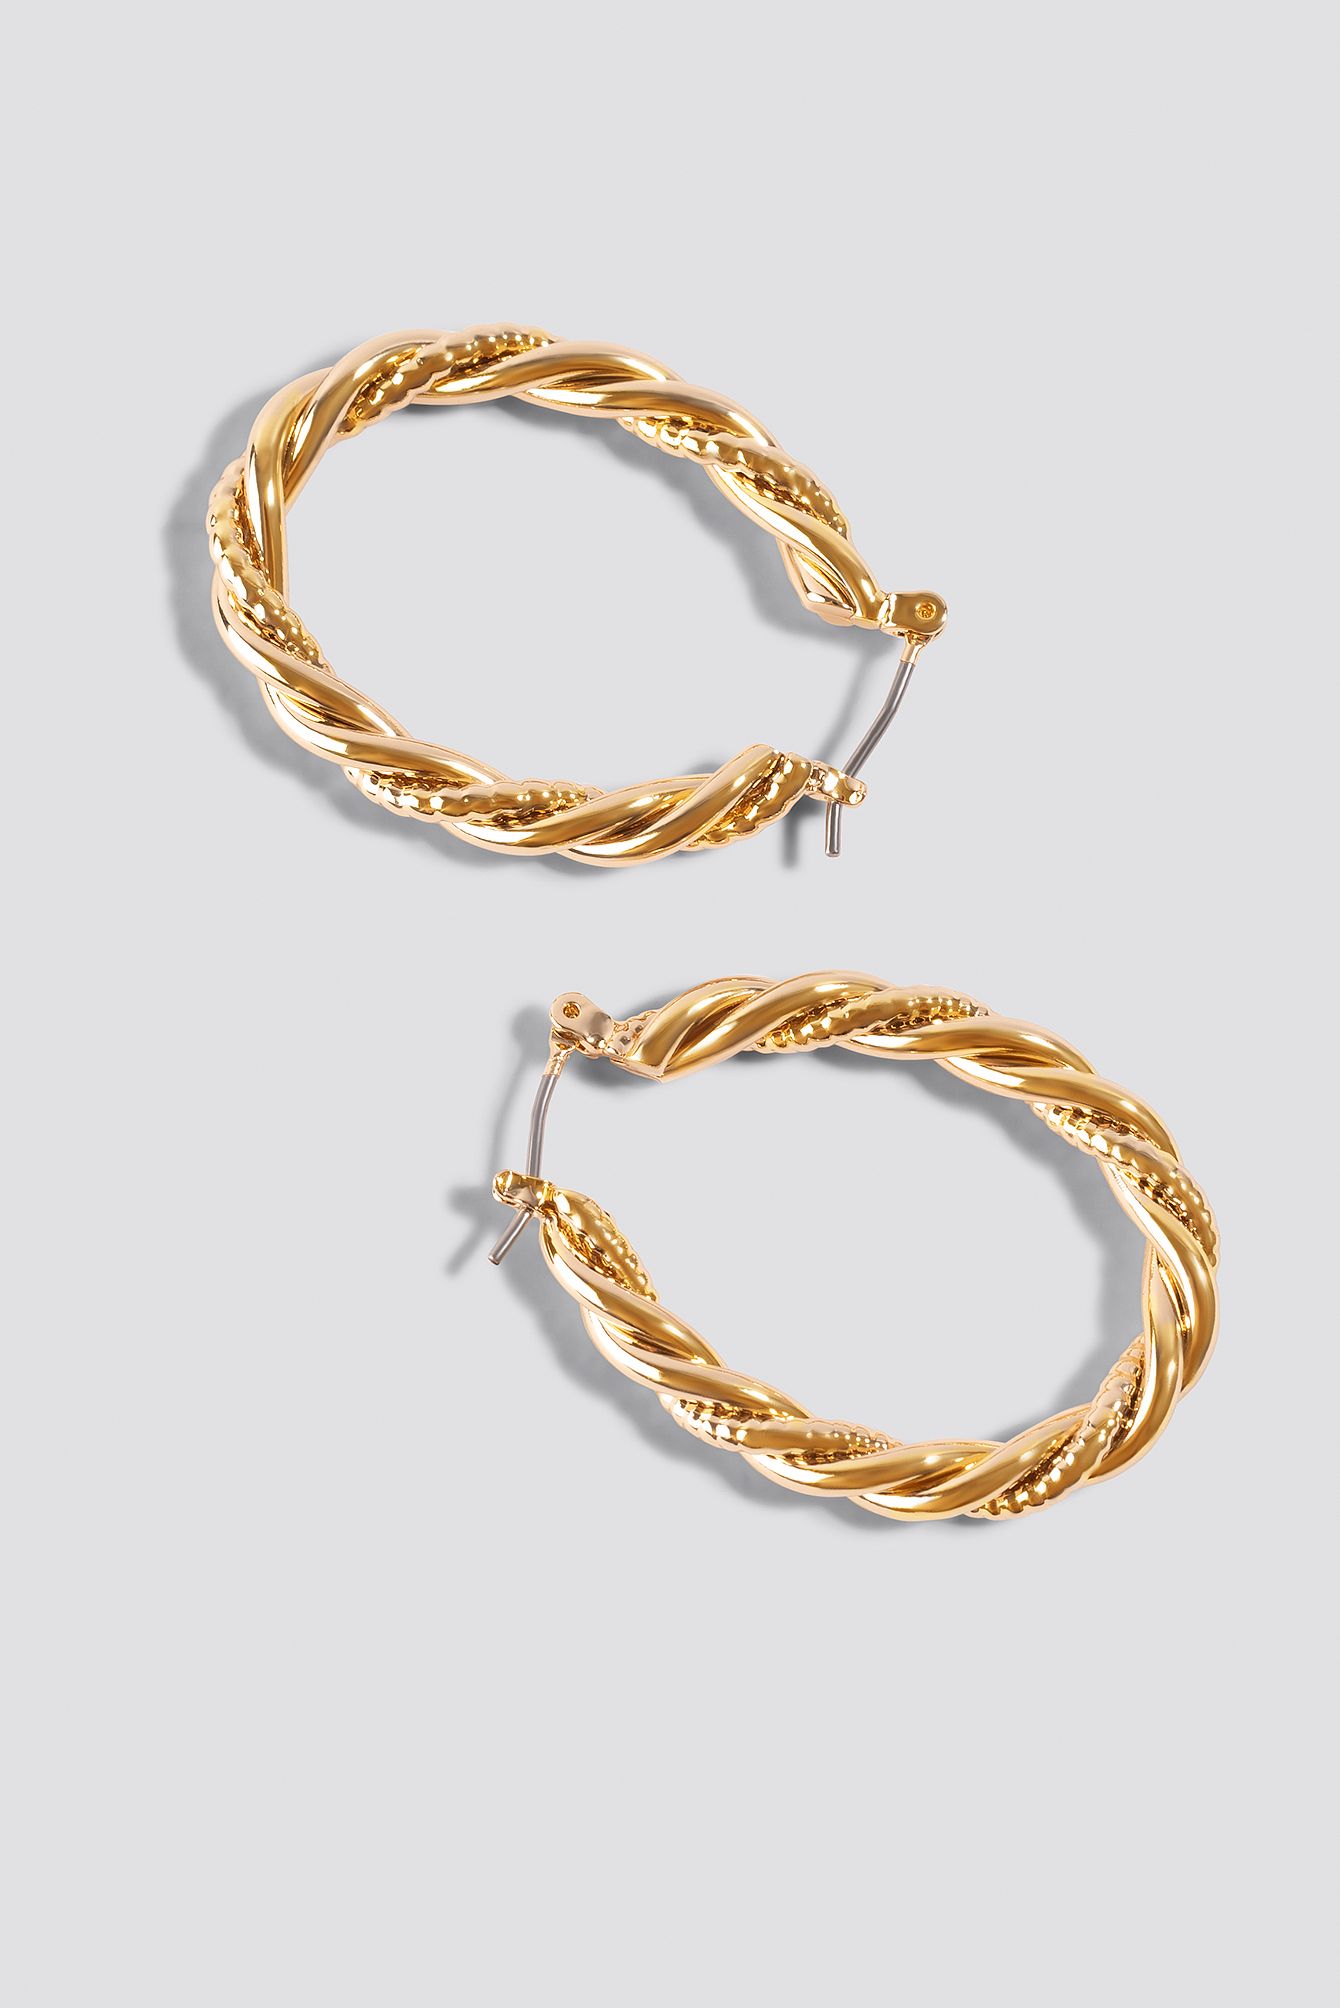 Gold Oval Braided Earrings